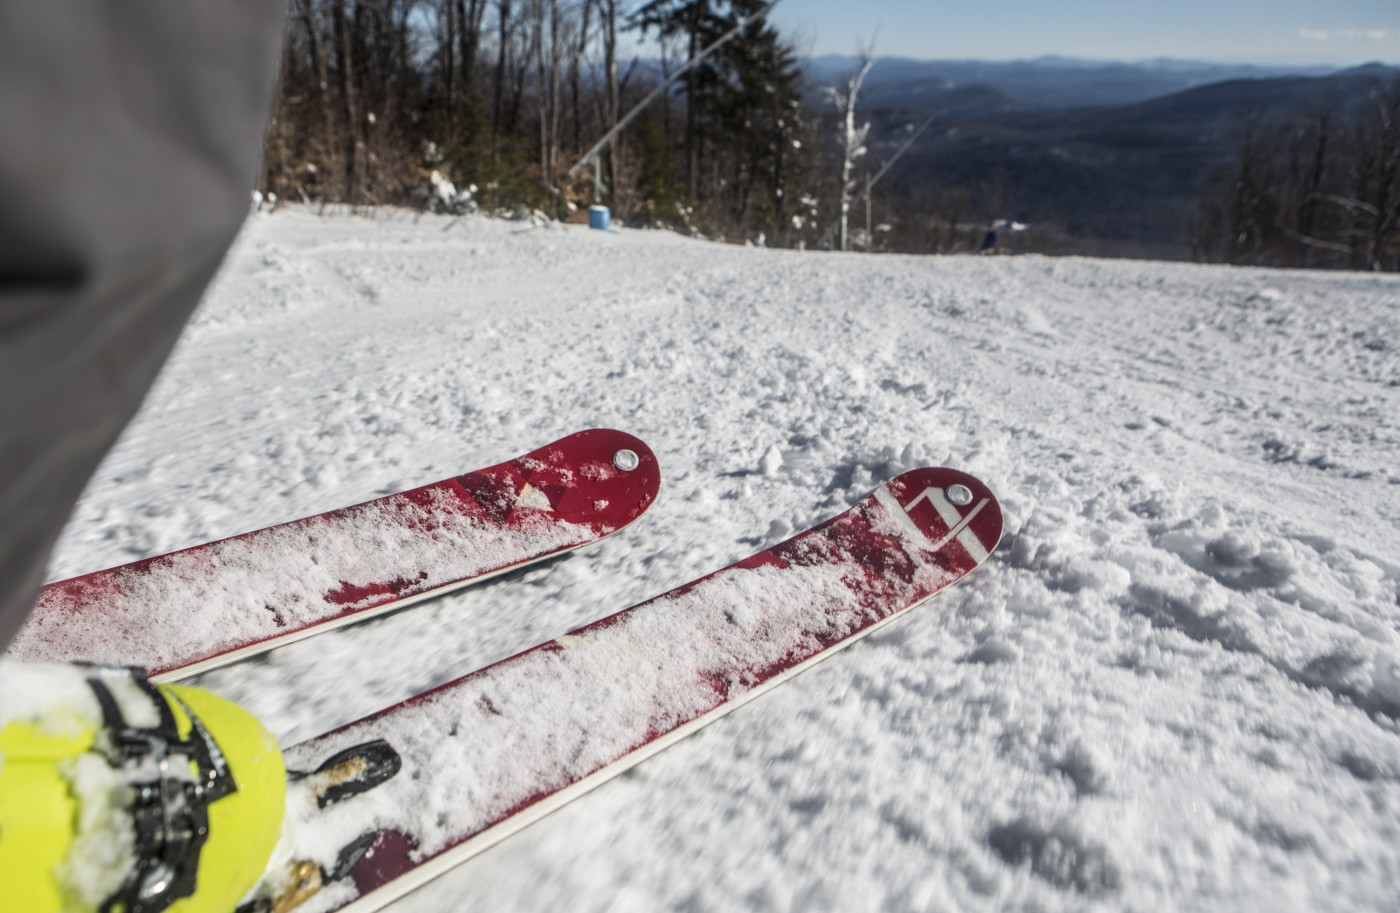 Tips of downhill skis